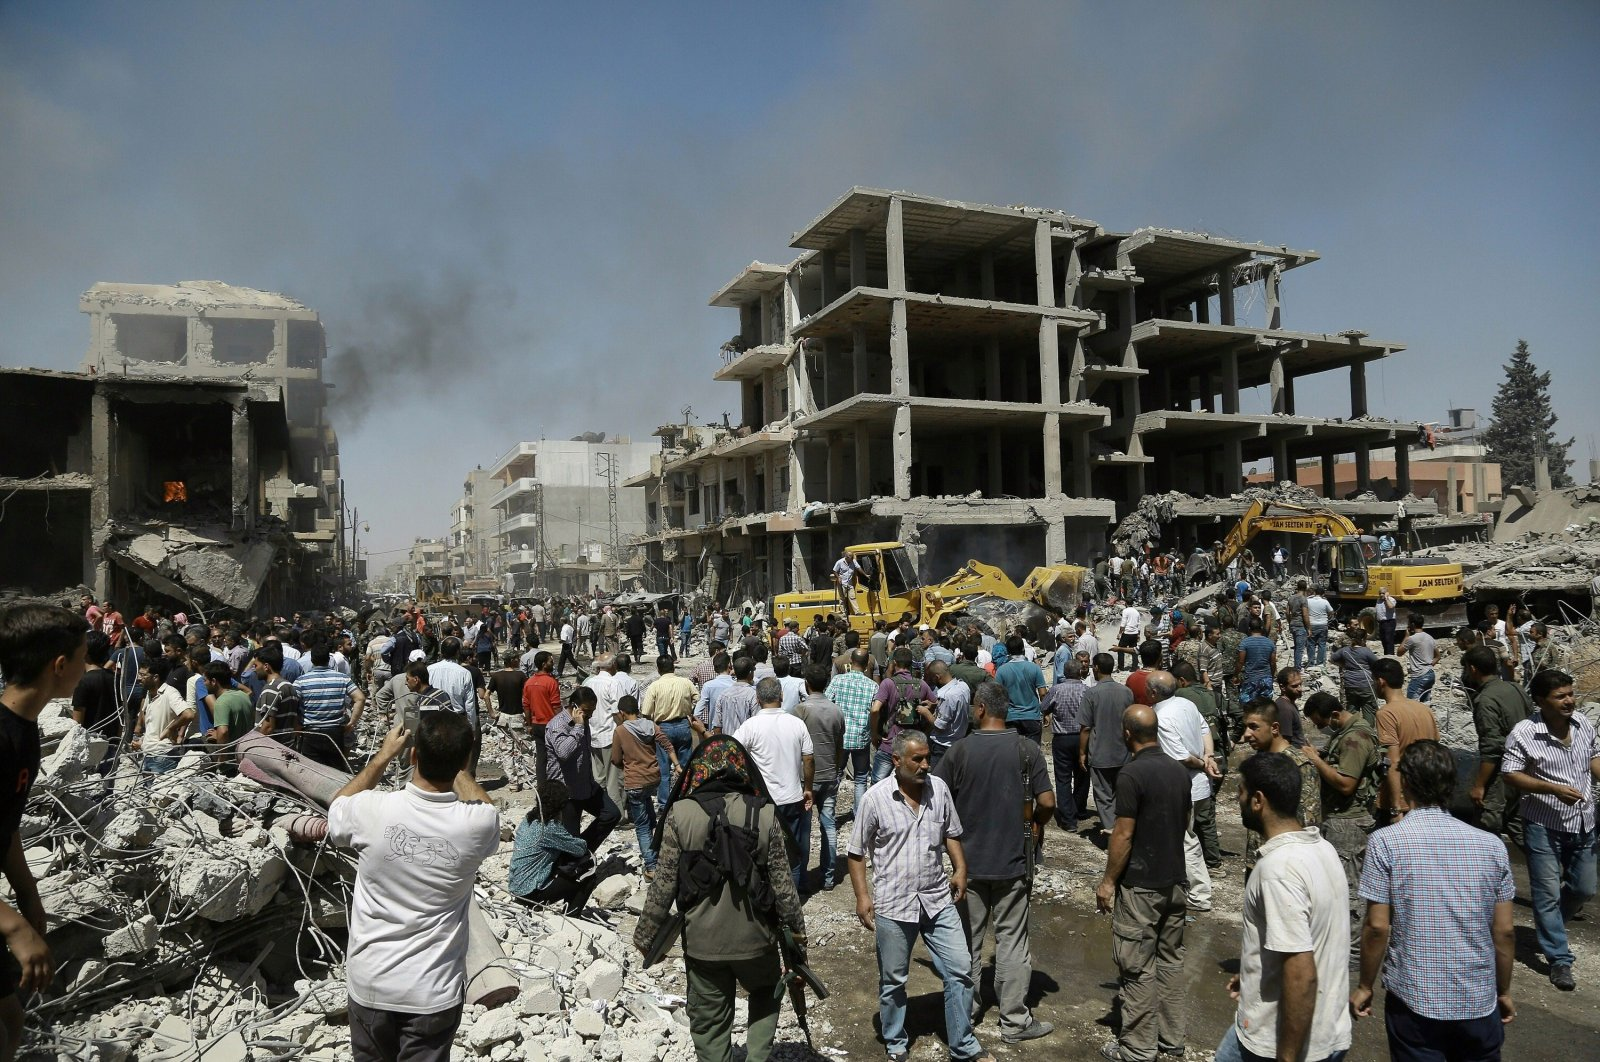 Syrians gather at the site of a YPG bomb attack in Syria's northeastern city of Qamishli on July 27, 2016 (AFP Photo)